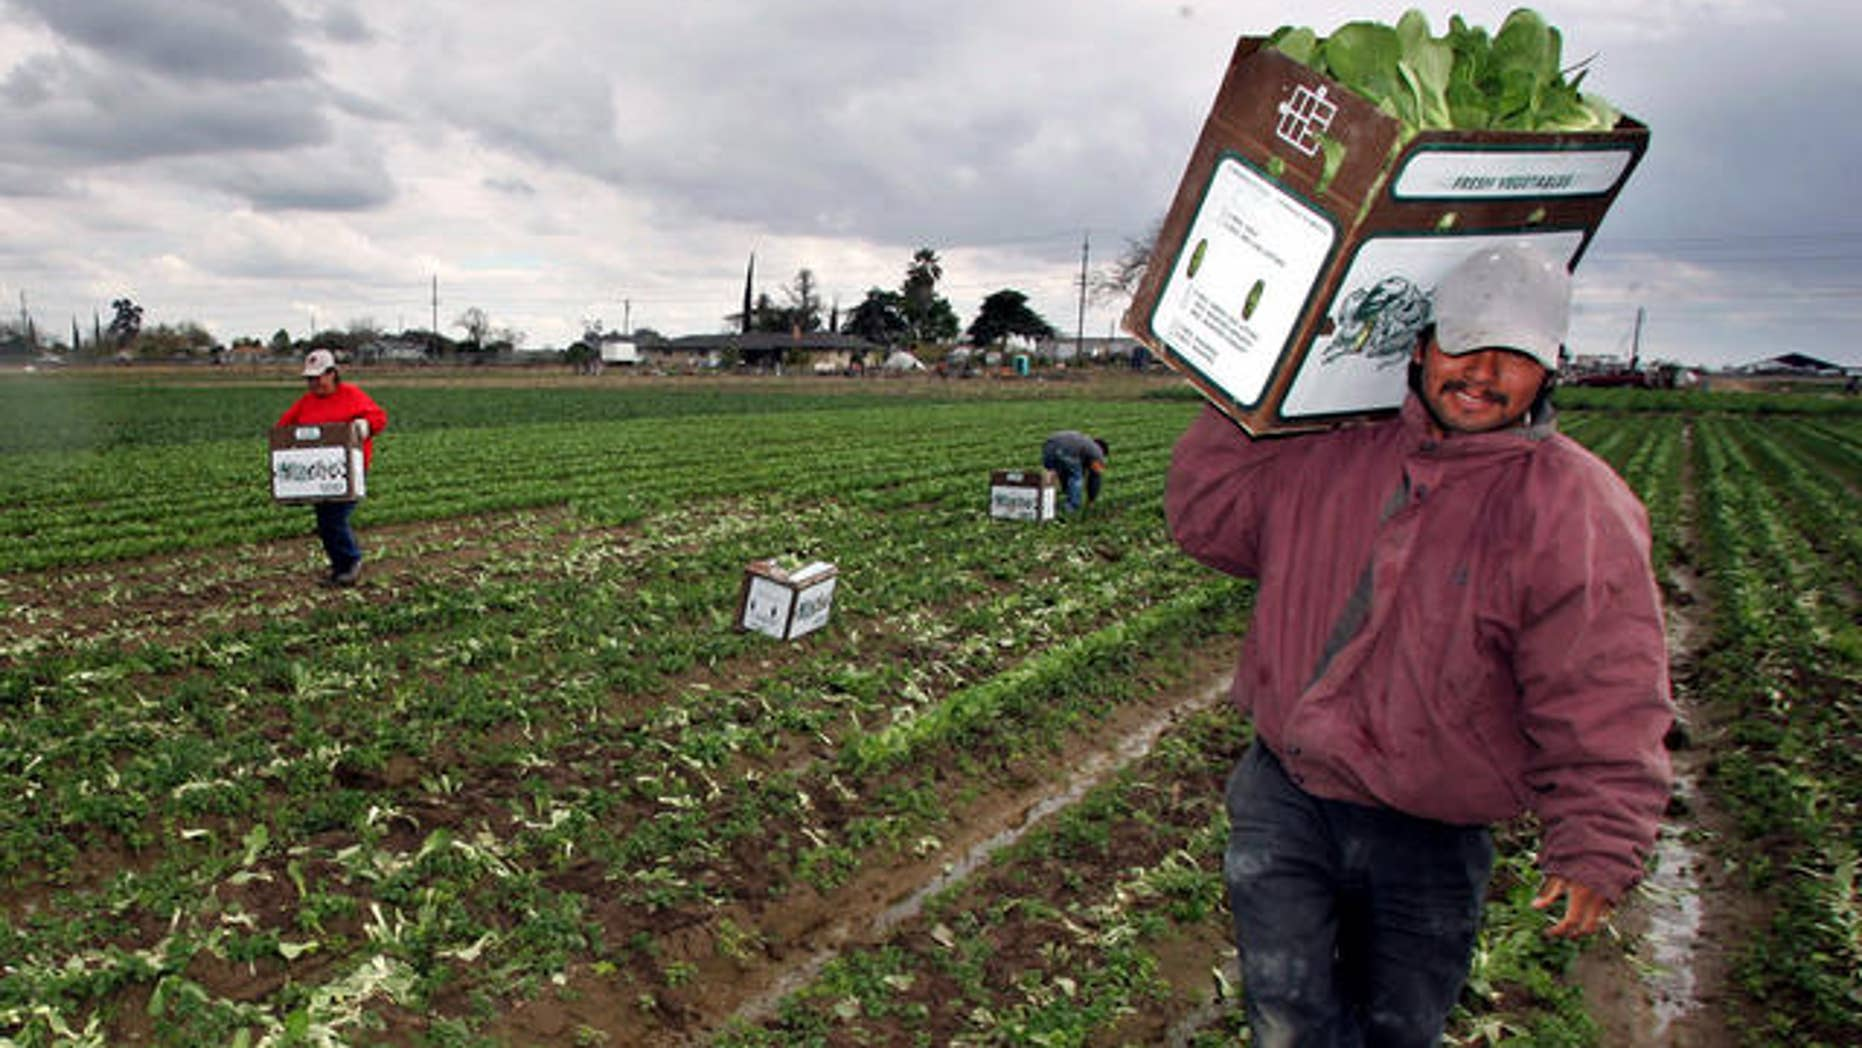 Workers carry boxes of bok choy out of a field Friday, March 31, 2006, in Fresno, Calif. Congress is embroiled in an intense debate over immigration legislation. At issue on the immigration controversy is a debate over a proposal that would legalize an estimated 11 million illegal immigrants in the United States and expand guest worker programs for an estimated 400,000 immigrants each year.  (AP Photo/Gary Kazanjian)